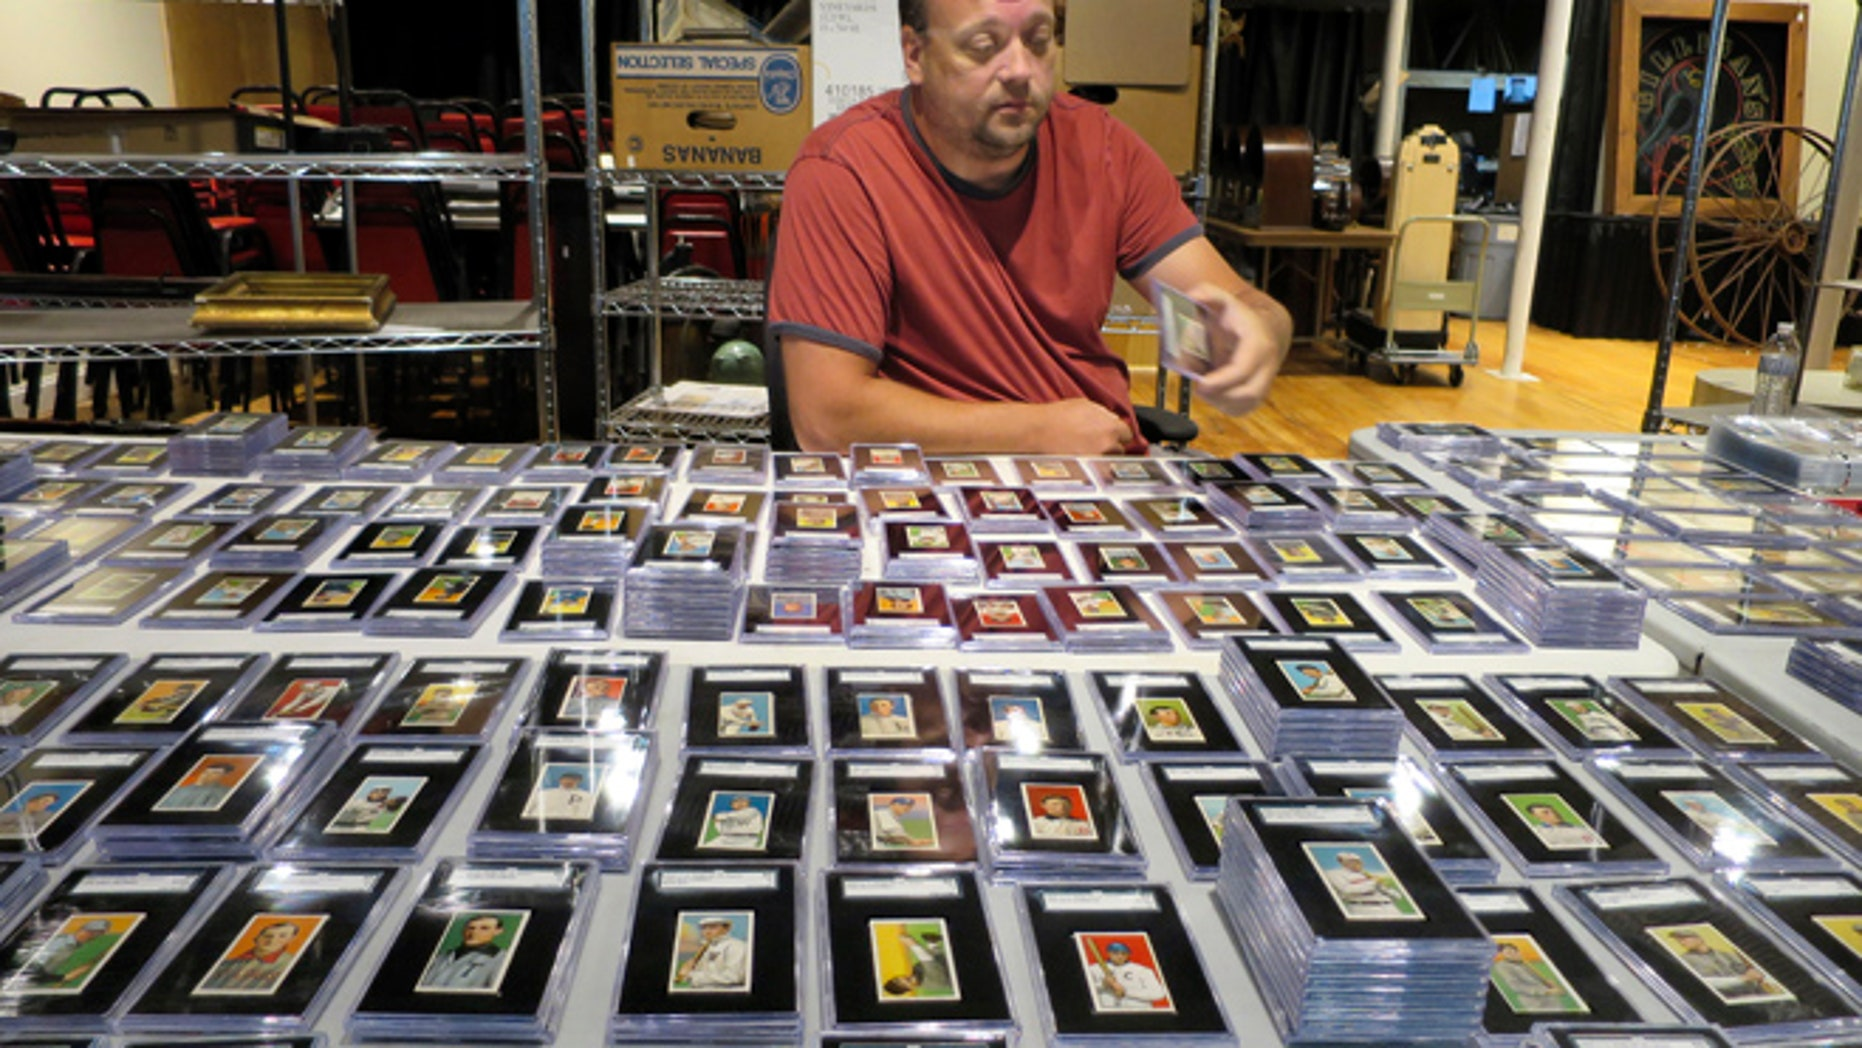 In this Aug. 25, 2014 photo, Troy Thibodeau, from Saco River Auction Co., examines a collection of more than 1,400 baseball cards from 1909, 1910, and 1911 in Biddeford, Maine. The collection will be auctioned off starting in January 2015. (AP/David Sharp)